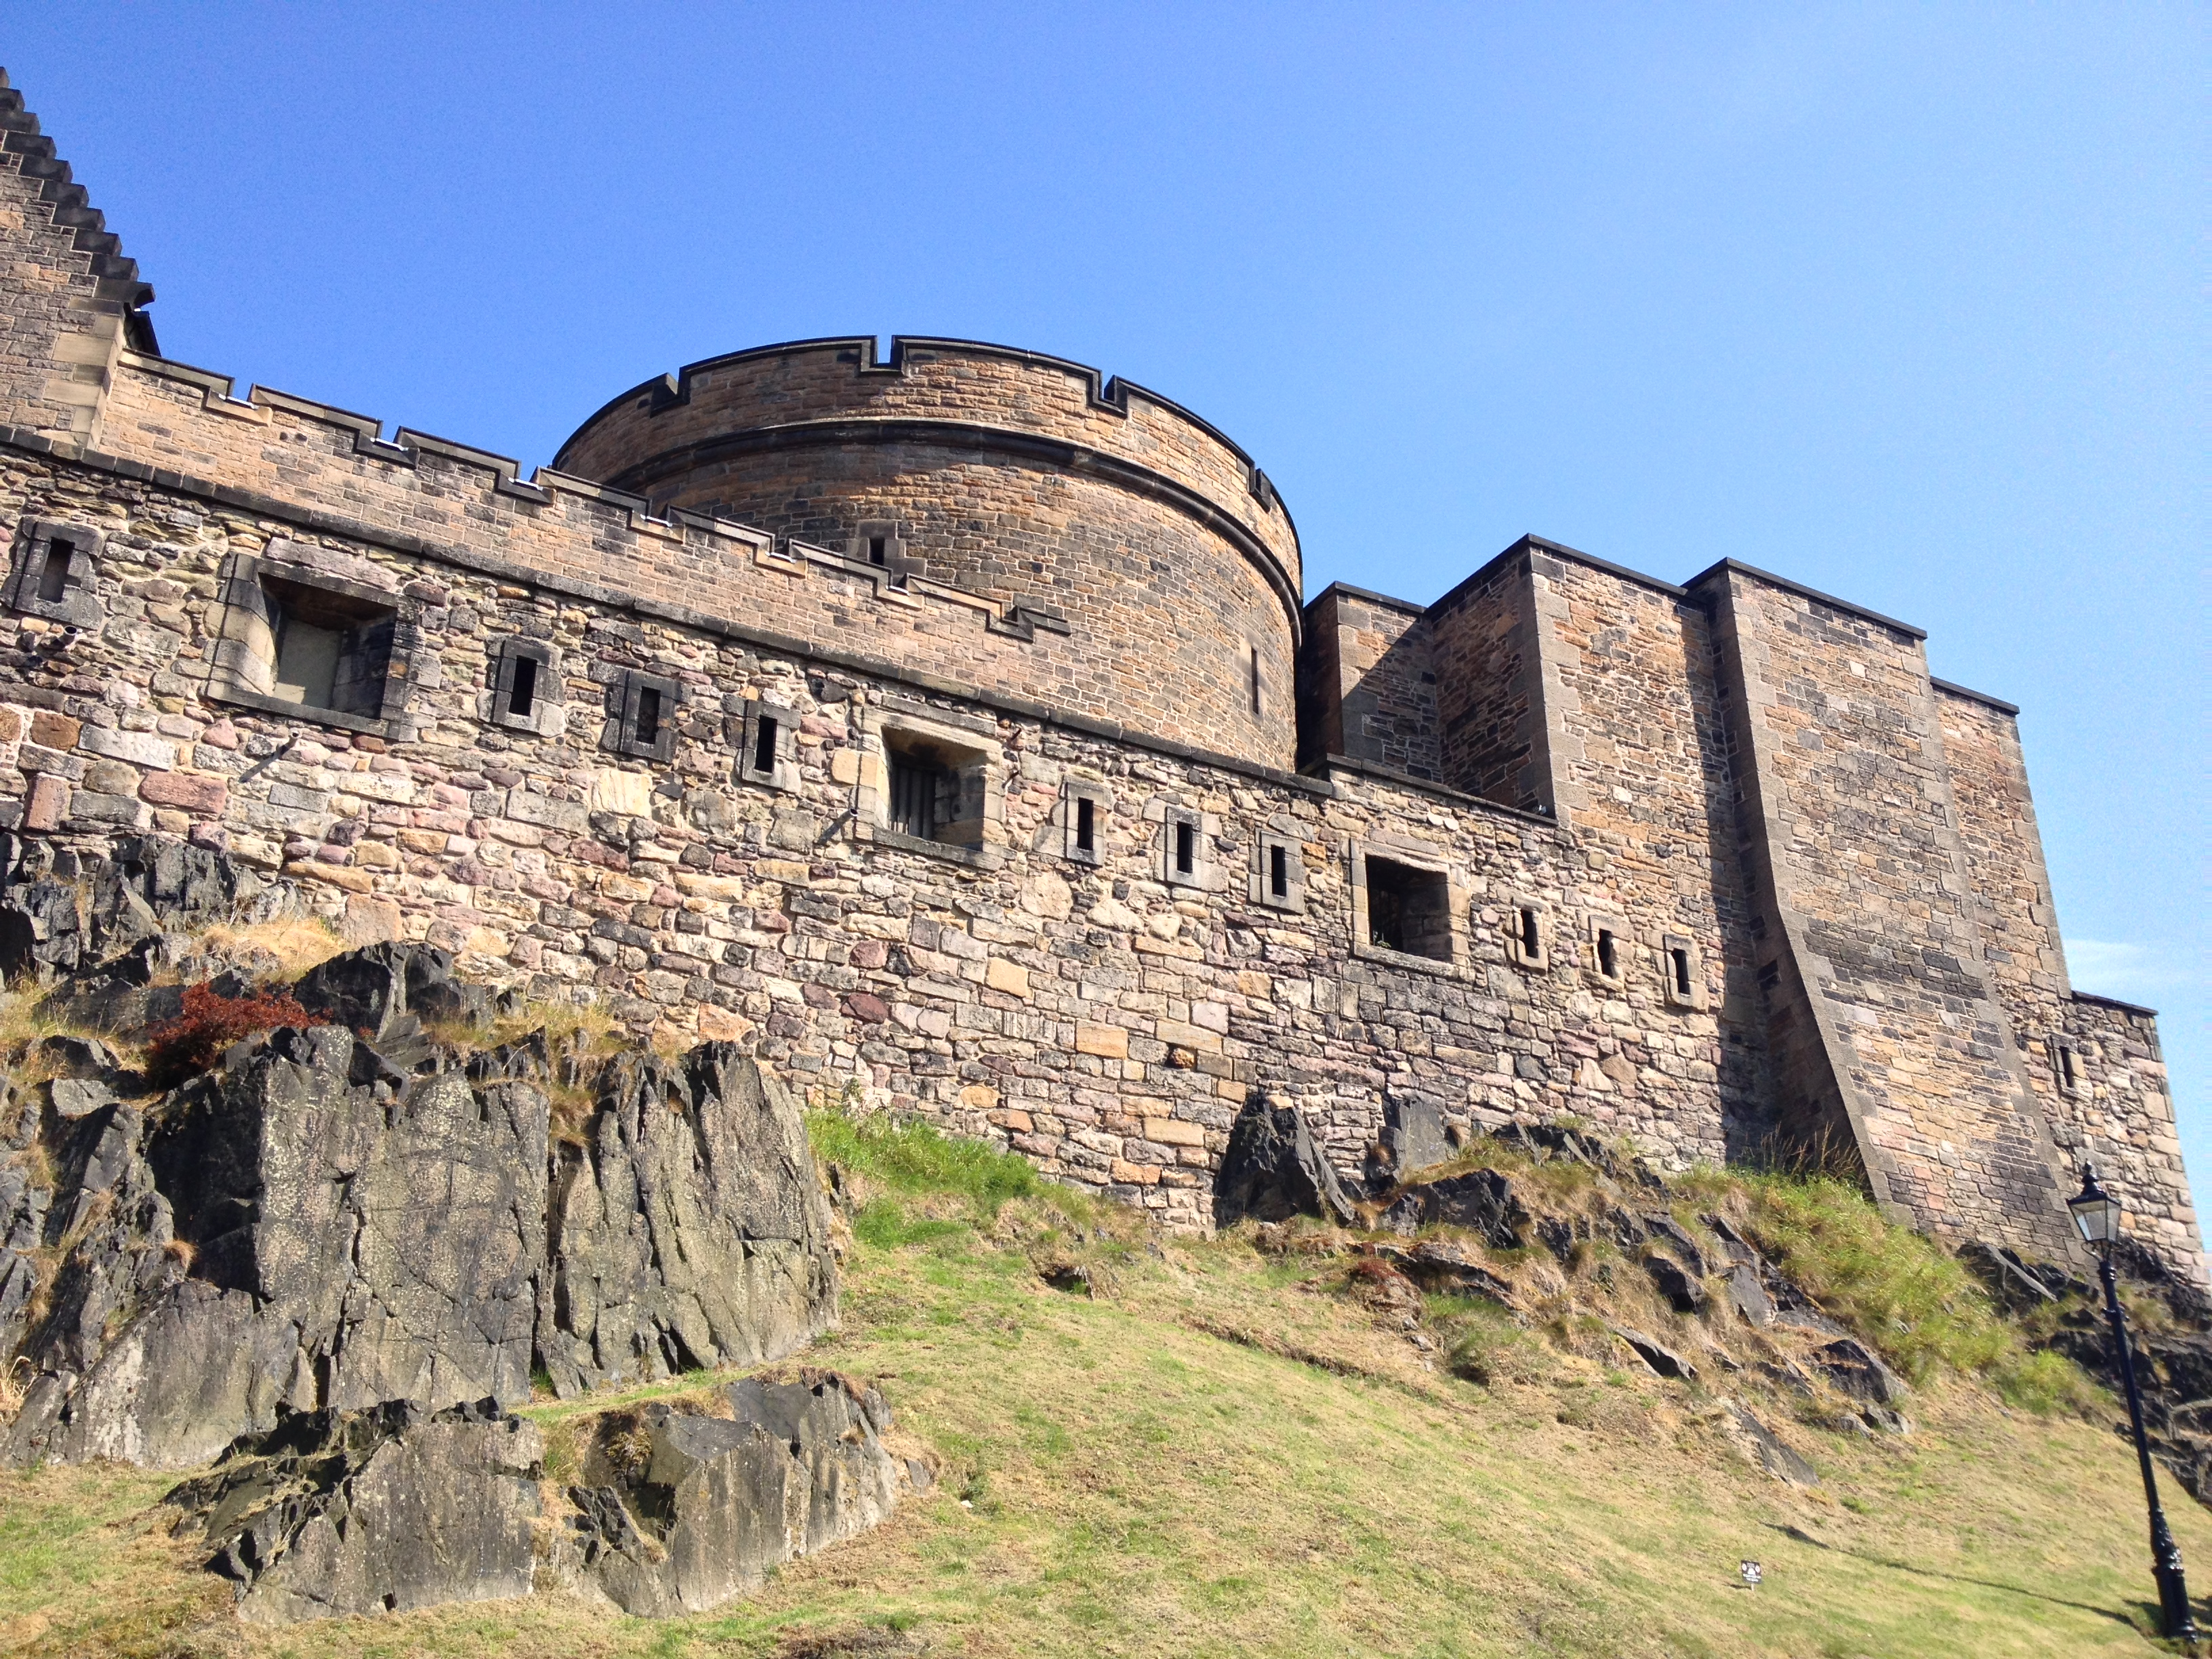 The fortress Castle high above Edinburgh